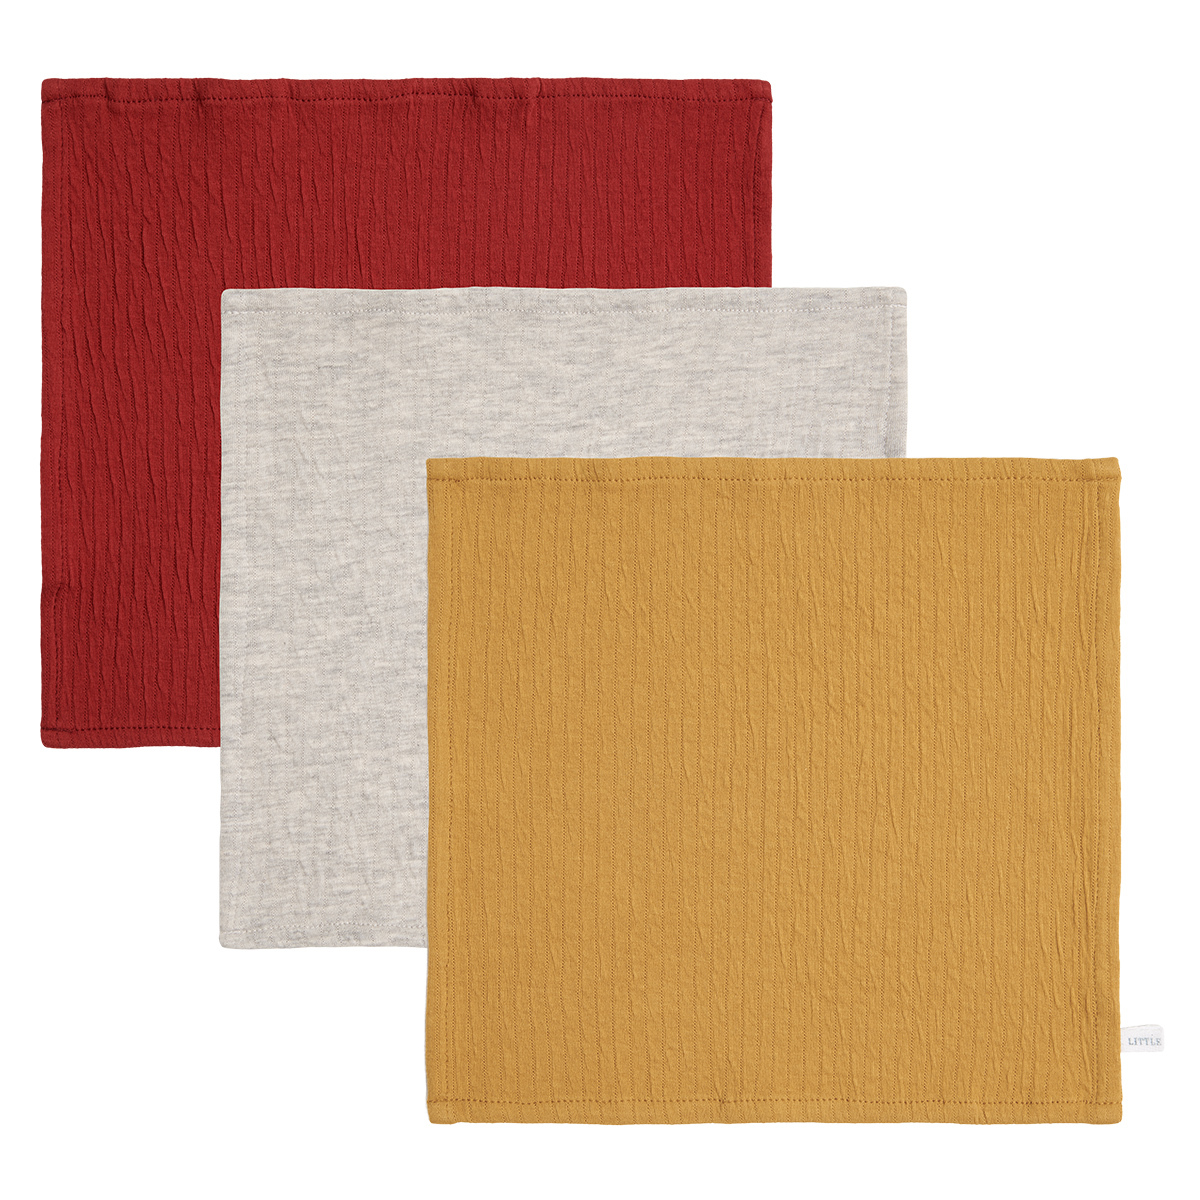 Gant de toilette Lot de 3 Lingettes Pure - Indian Red, Grey & Ochre